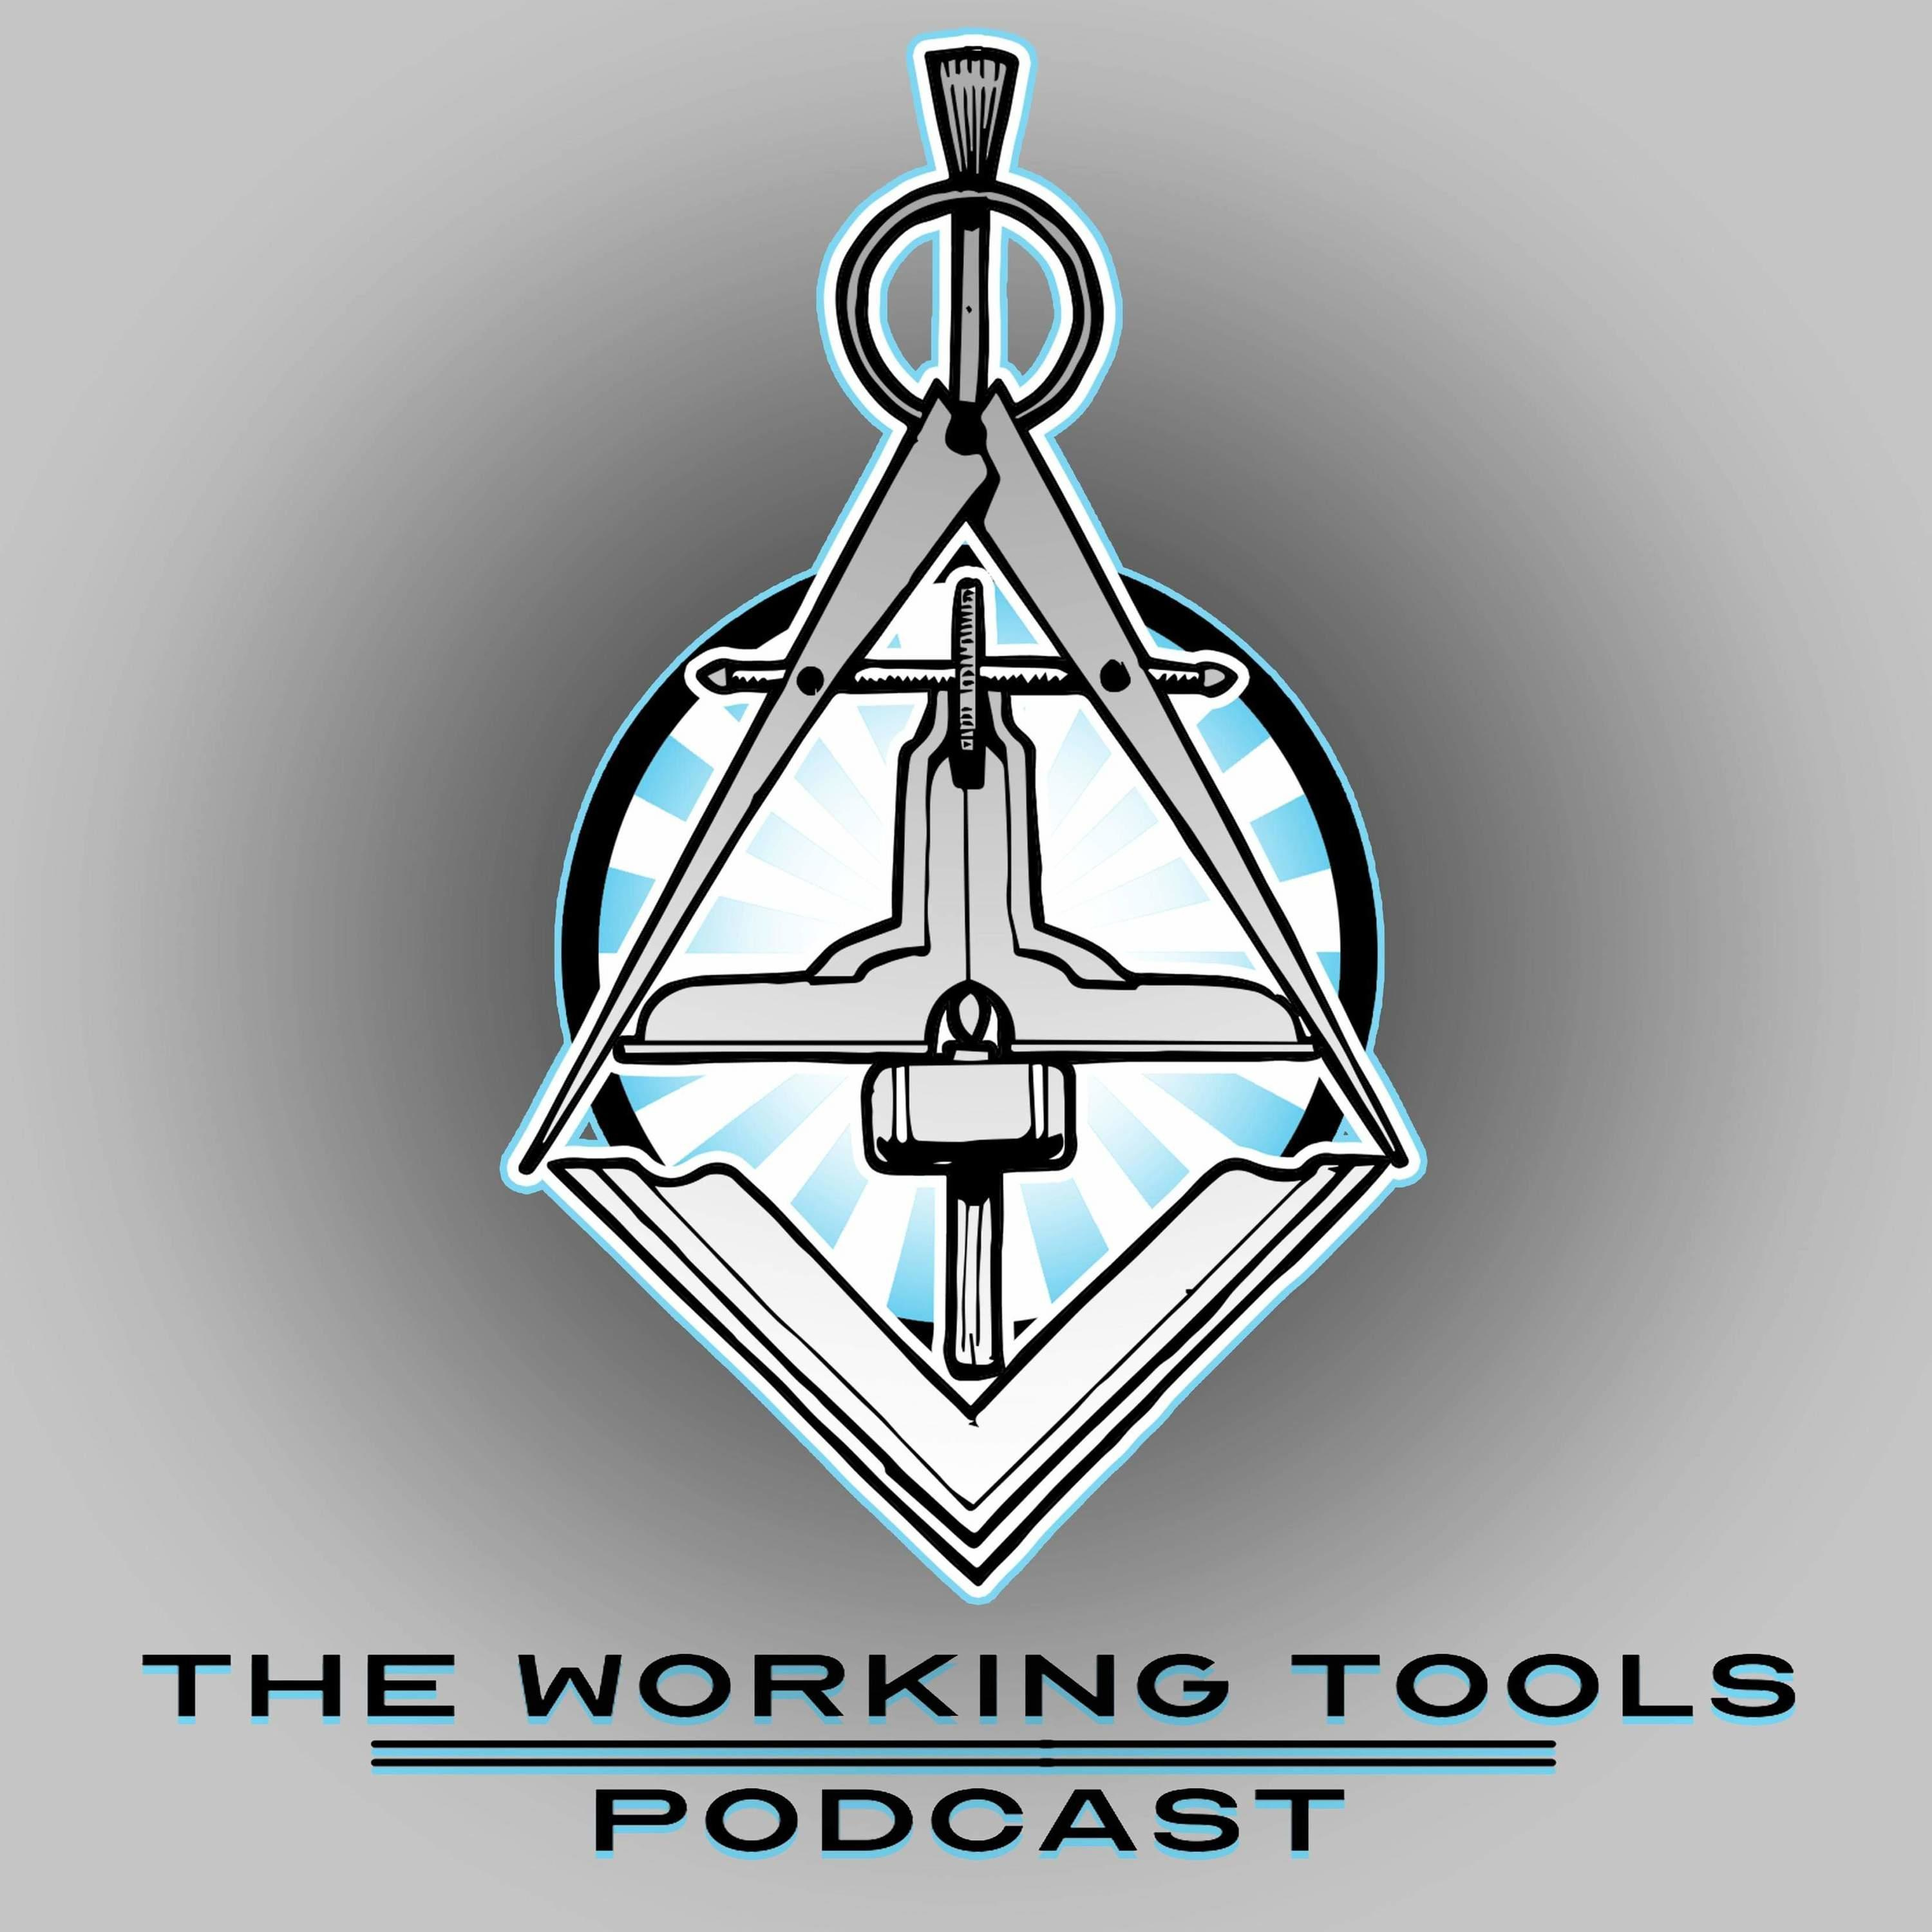 The Working Tools Podcast